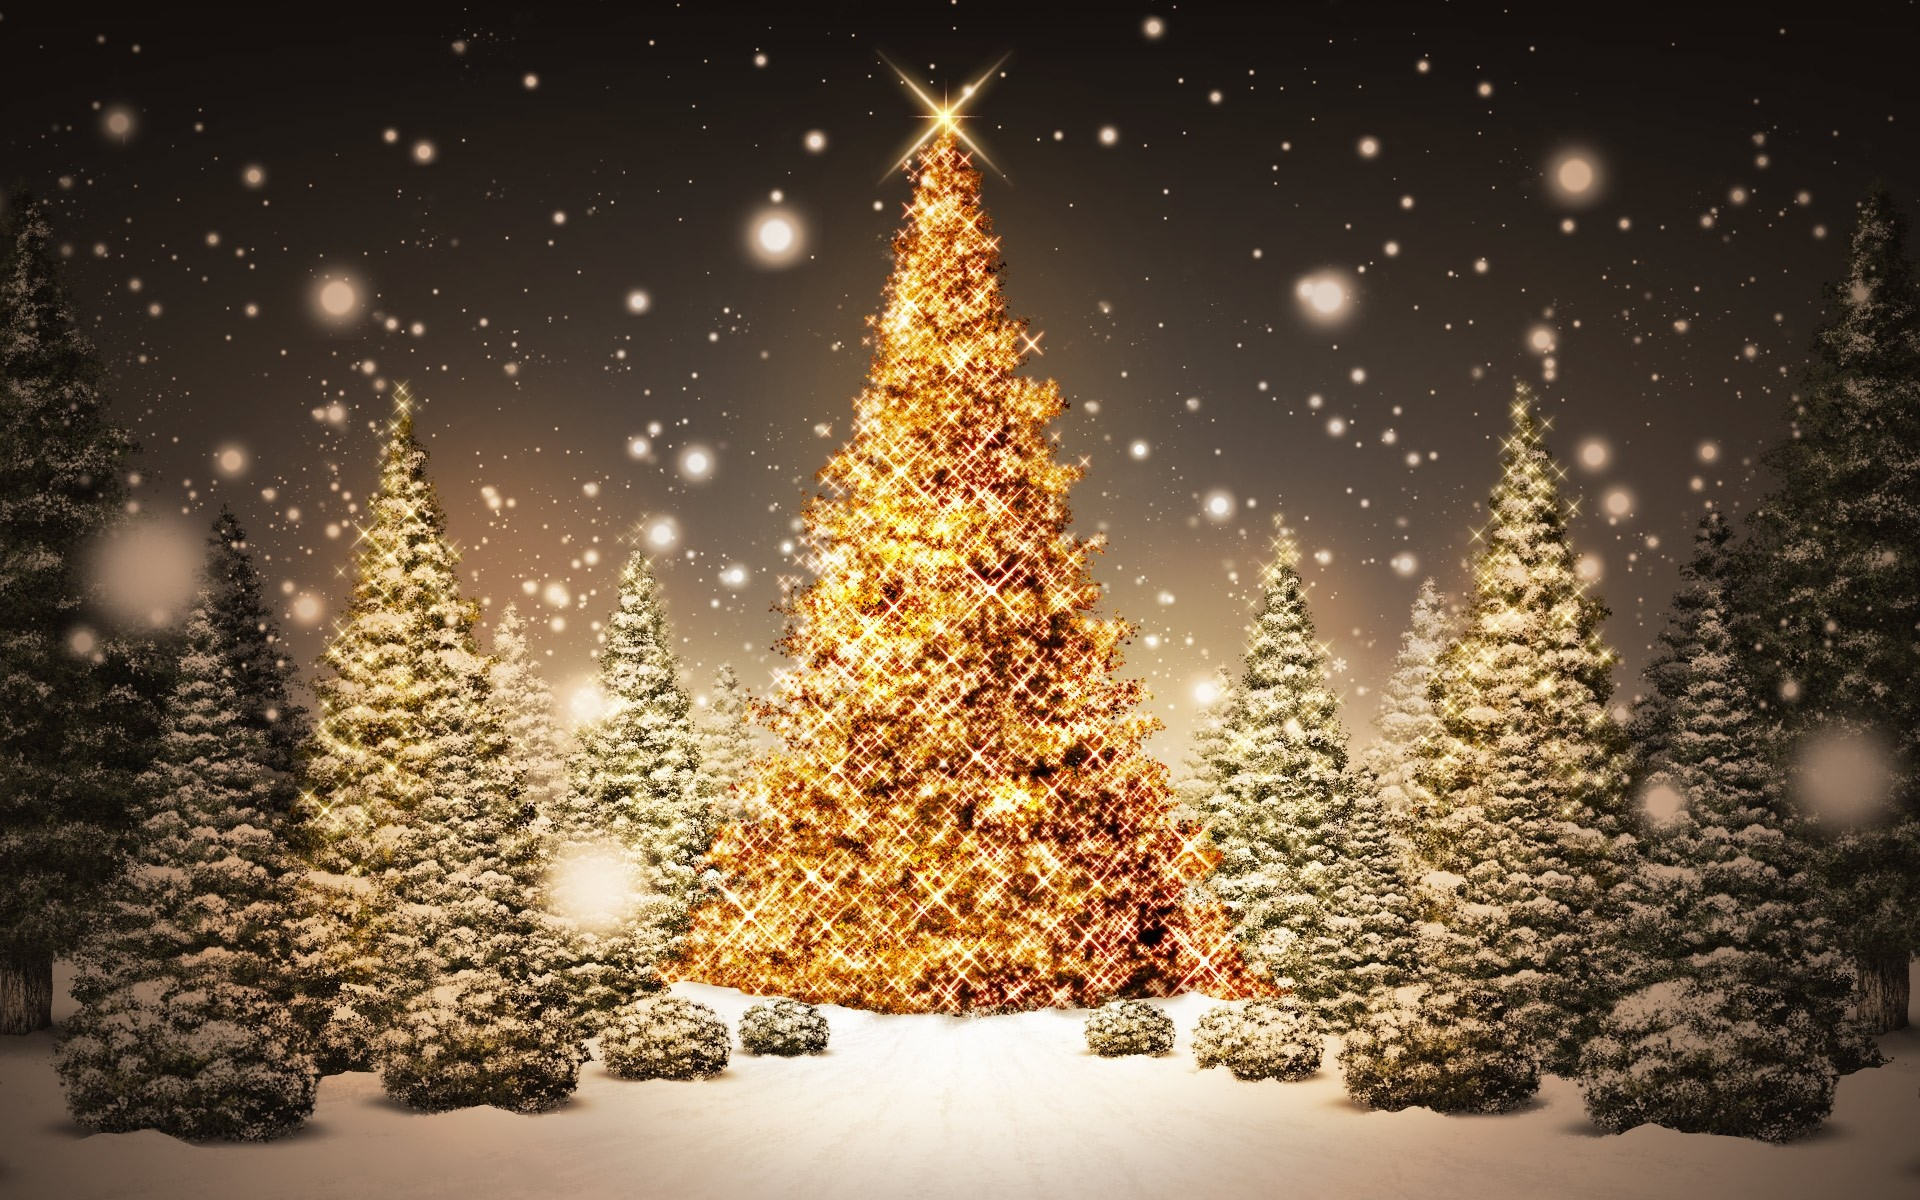 Wallpapers | Free 3d Christmas Tree Backgrounds | Desktop Wallpapers .